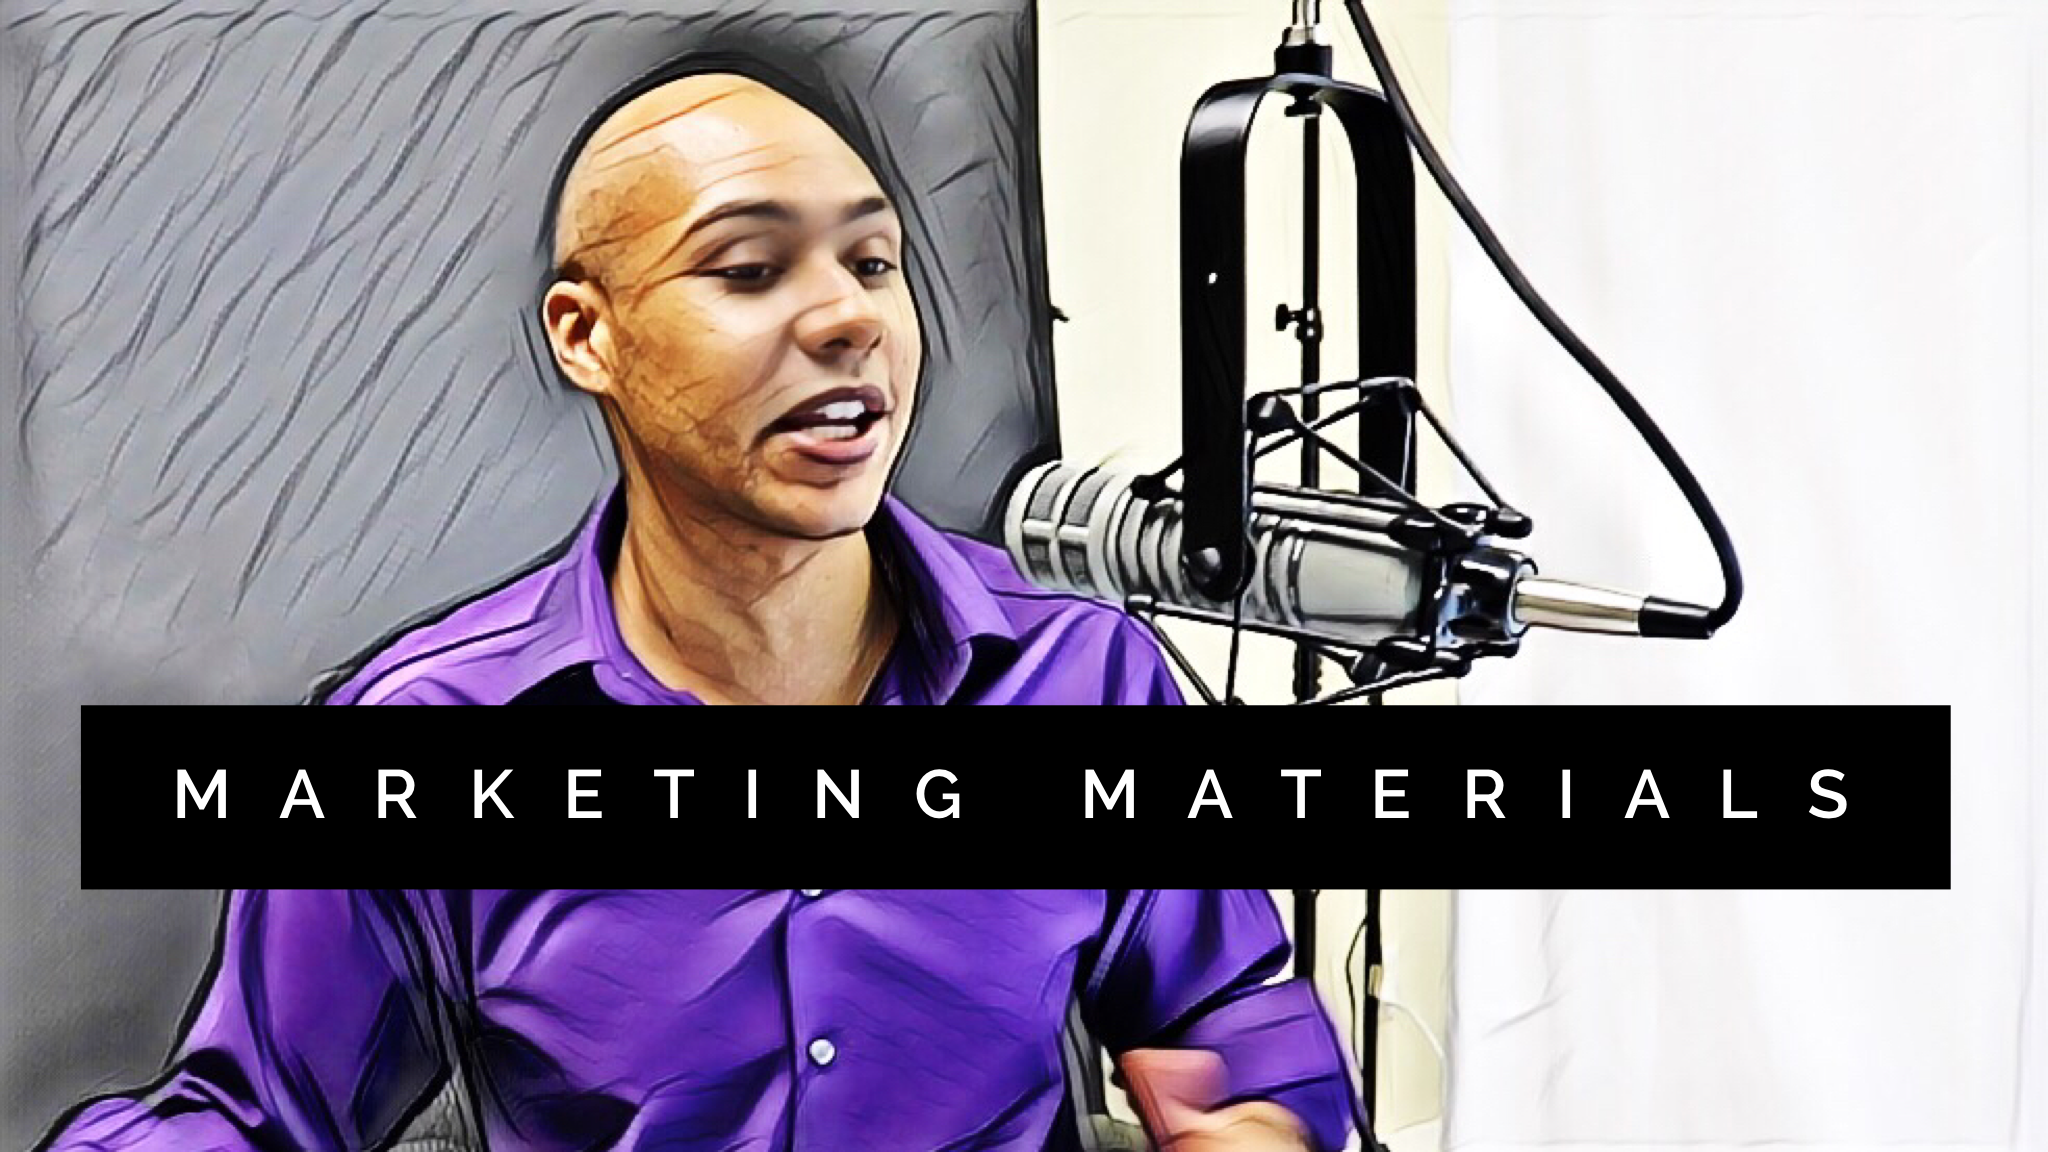 What marketing materials do you need for your speaking business?